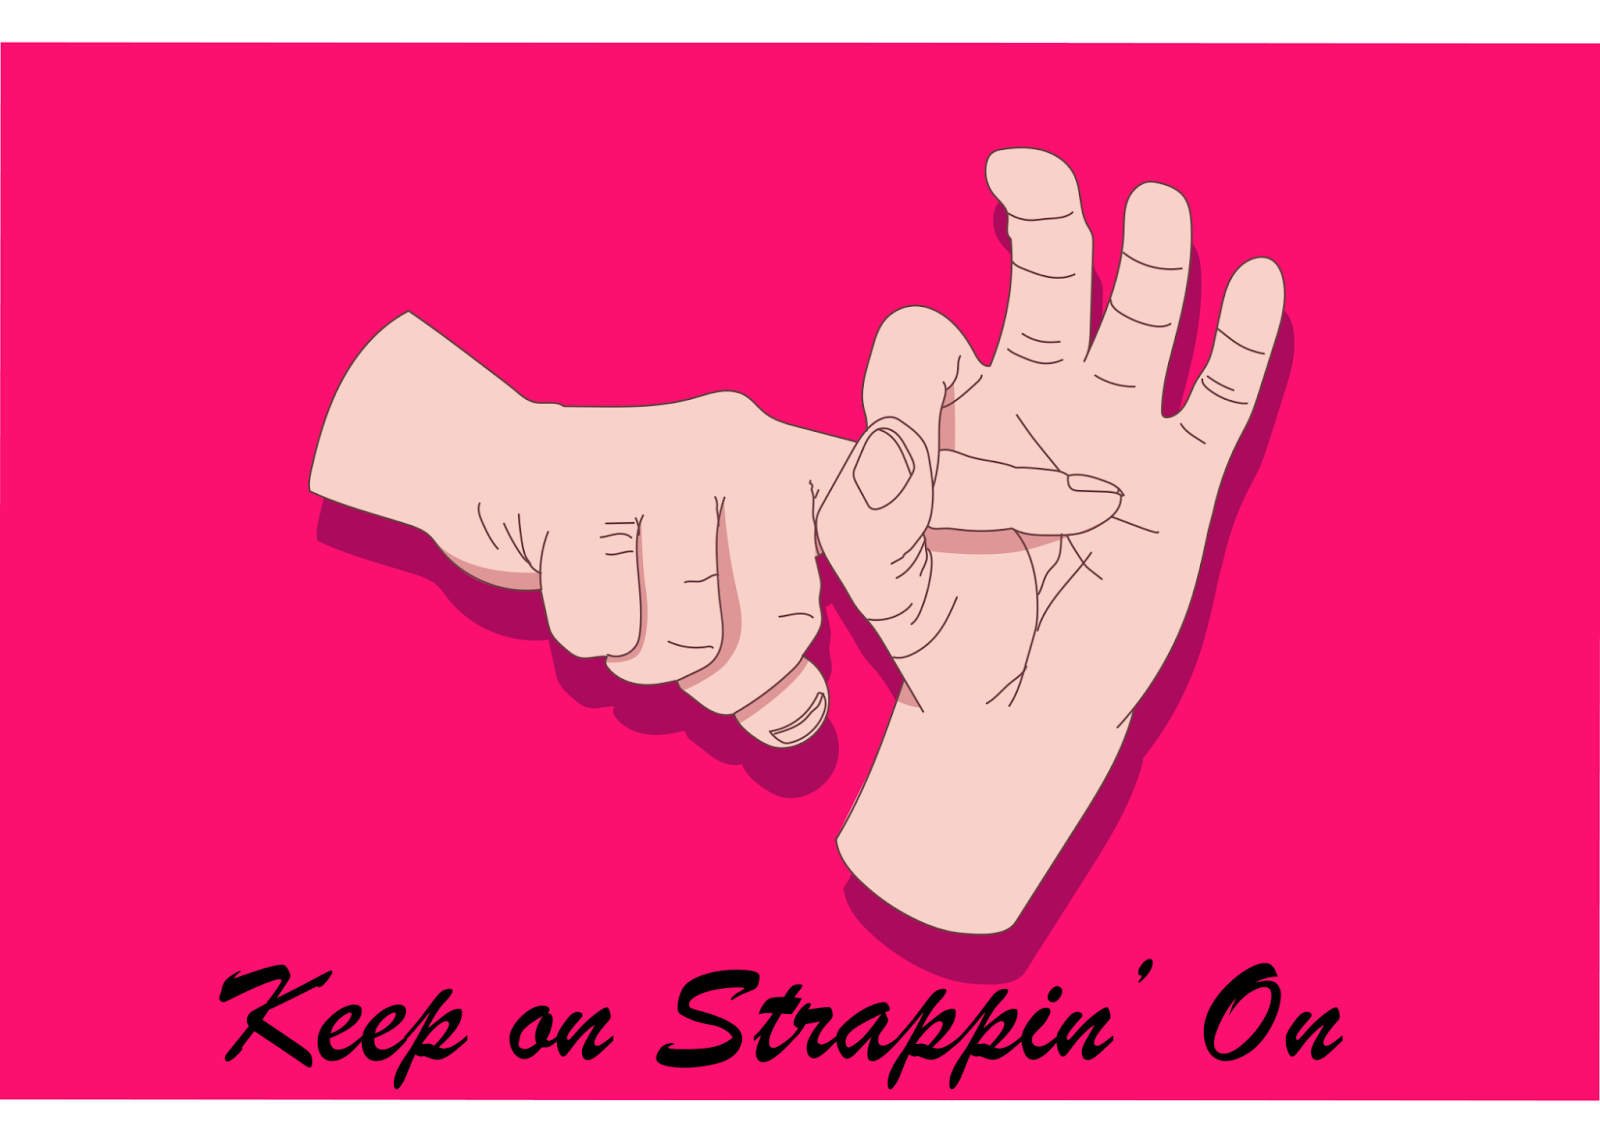 Keep on Strappin' on is a monthly meme dedicated to strapons